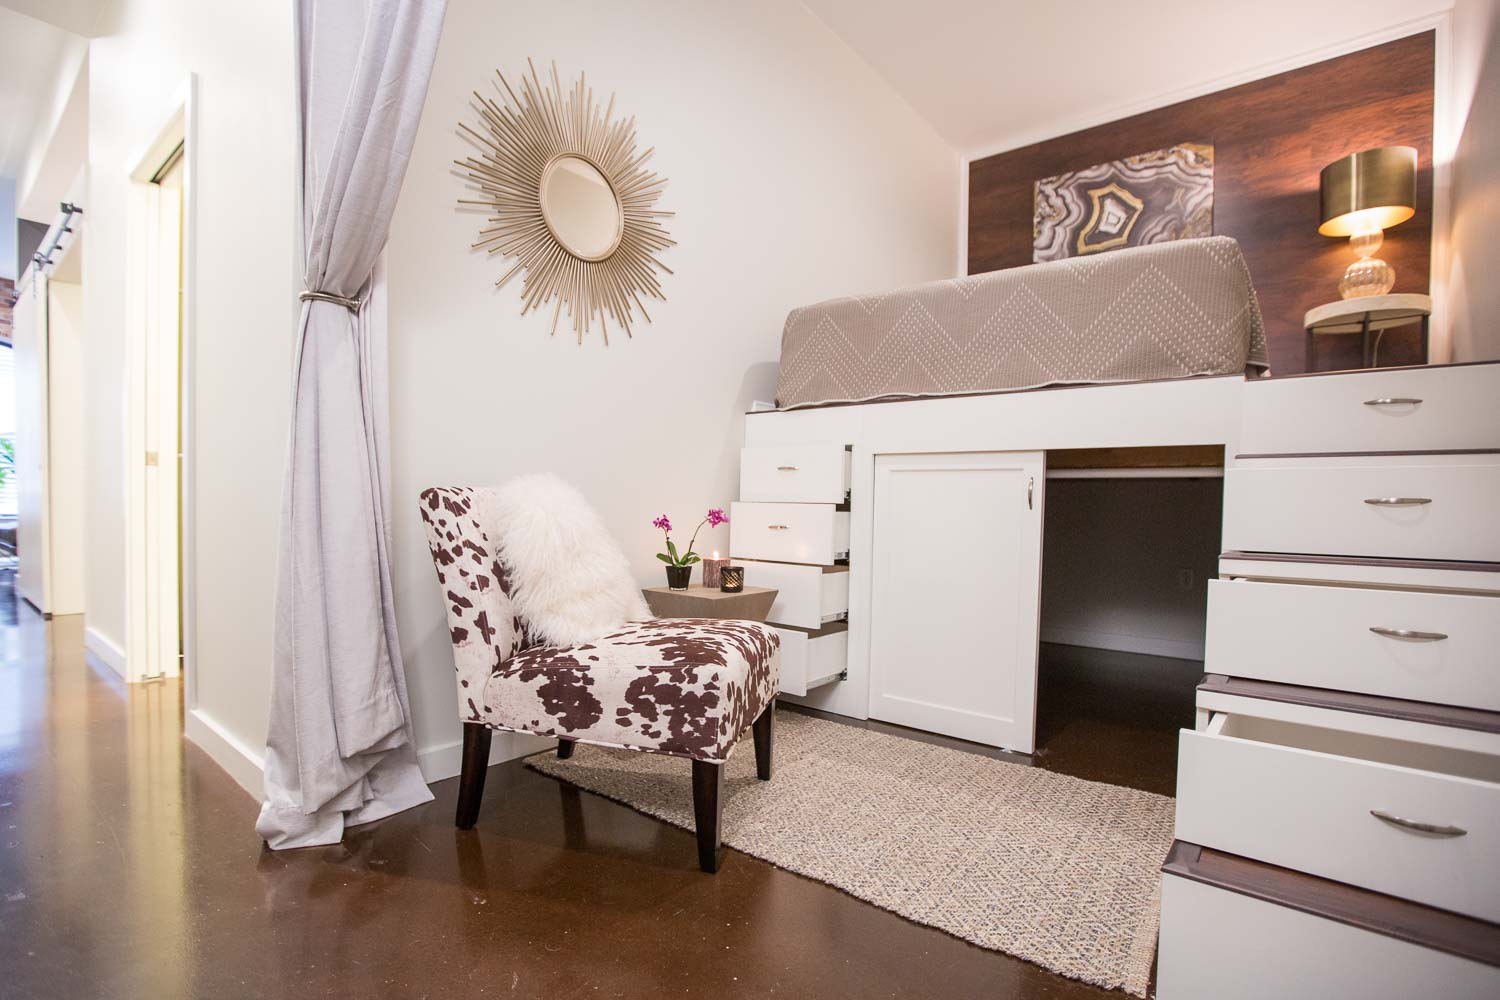 The investor/clients had the great idea to add a lofted guest room with wood paneled headboard wall and plenty of storage. They implemented and we added the cowhide chair and detailing.